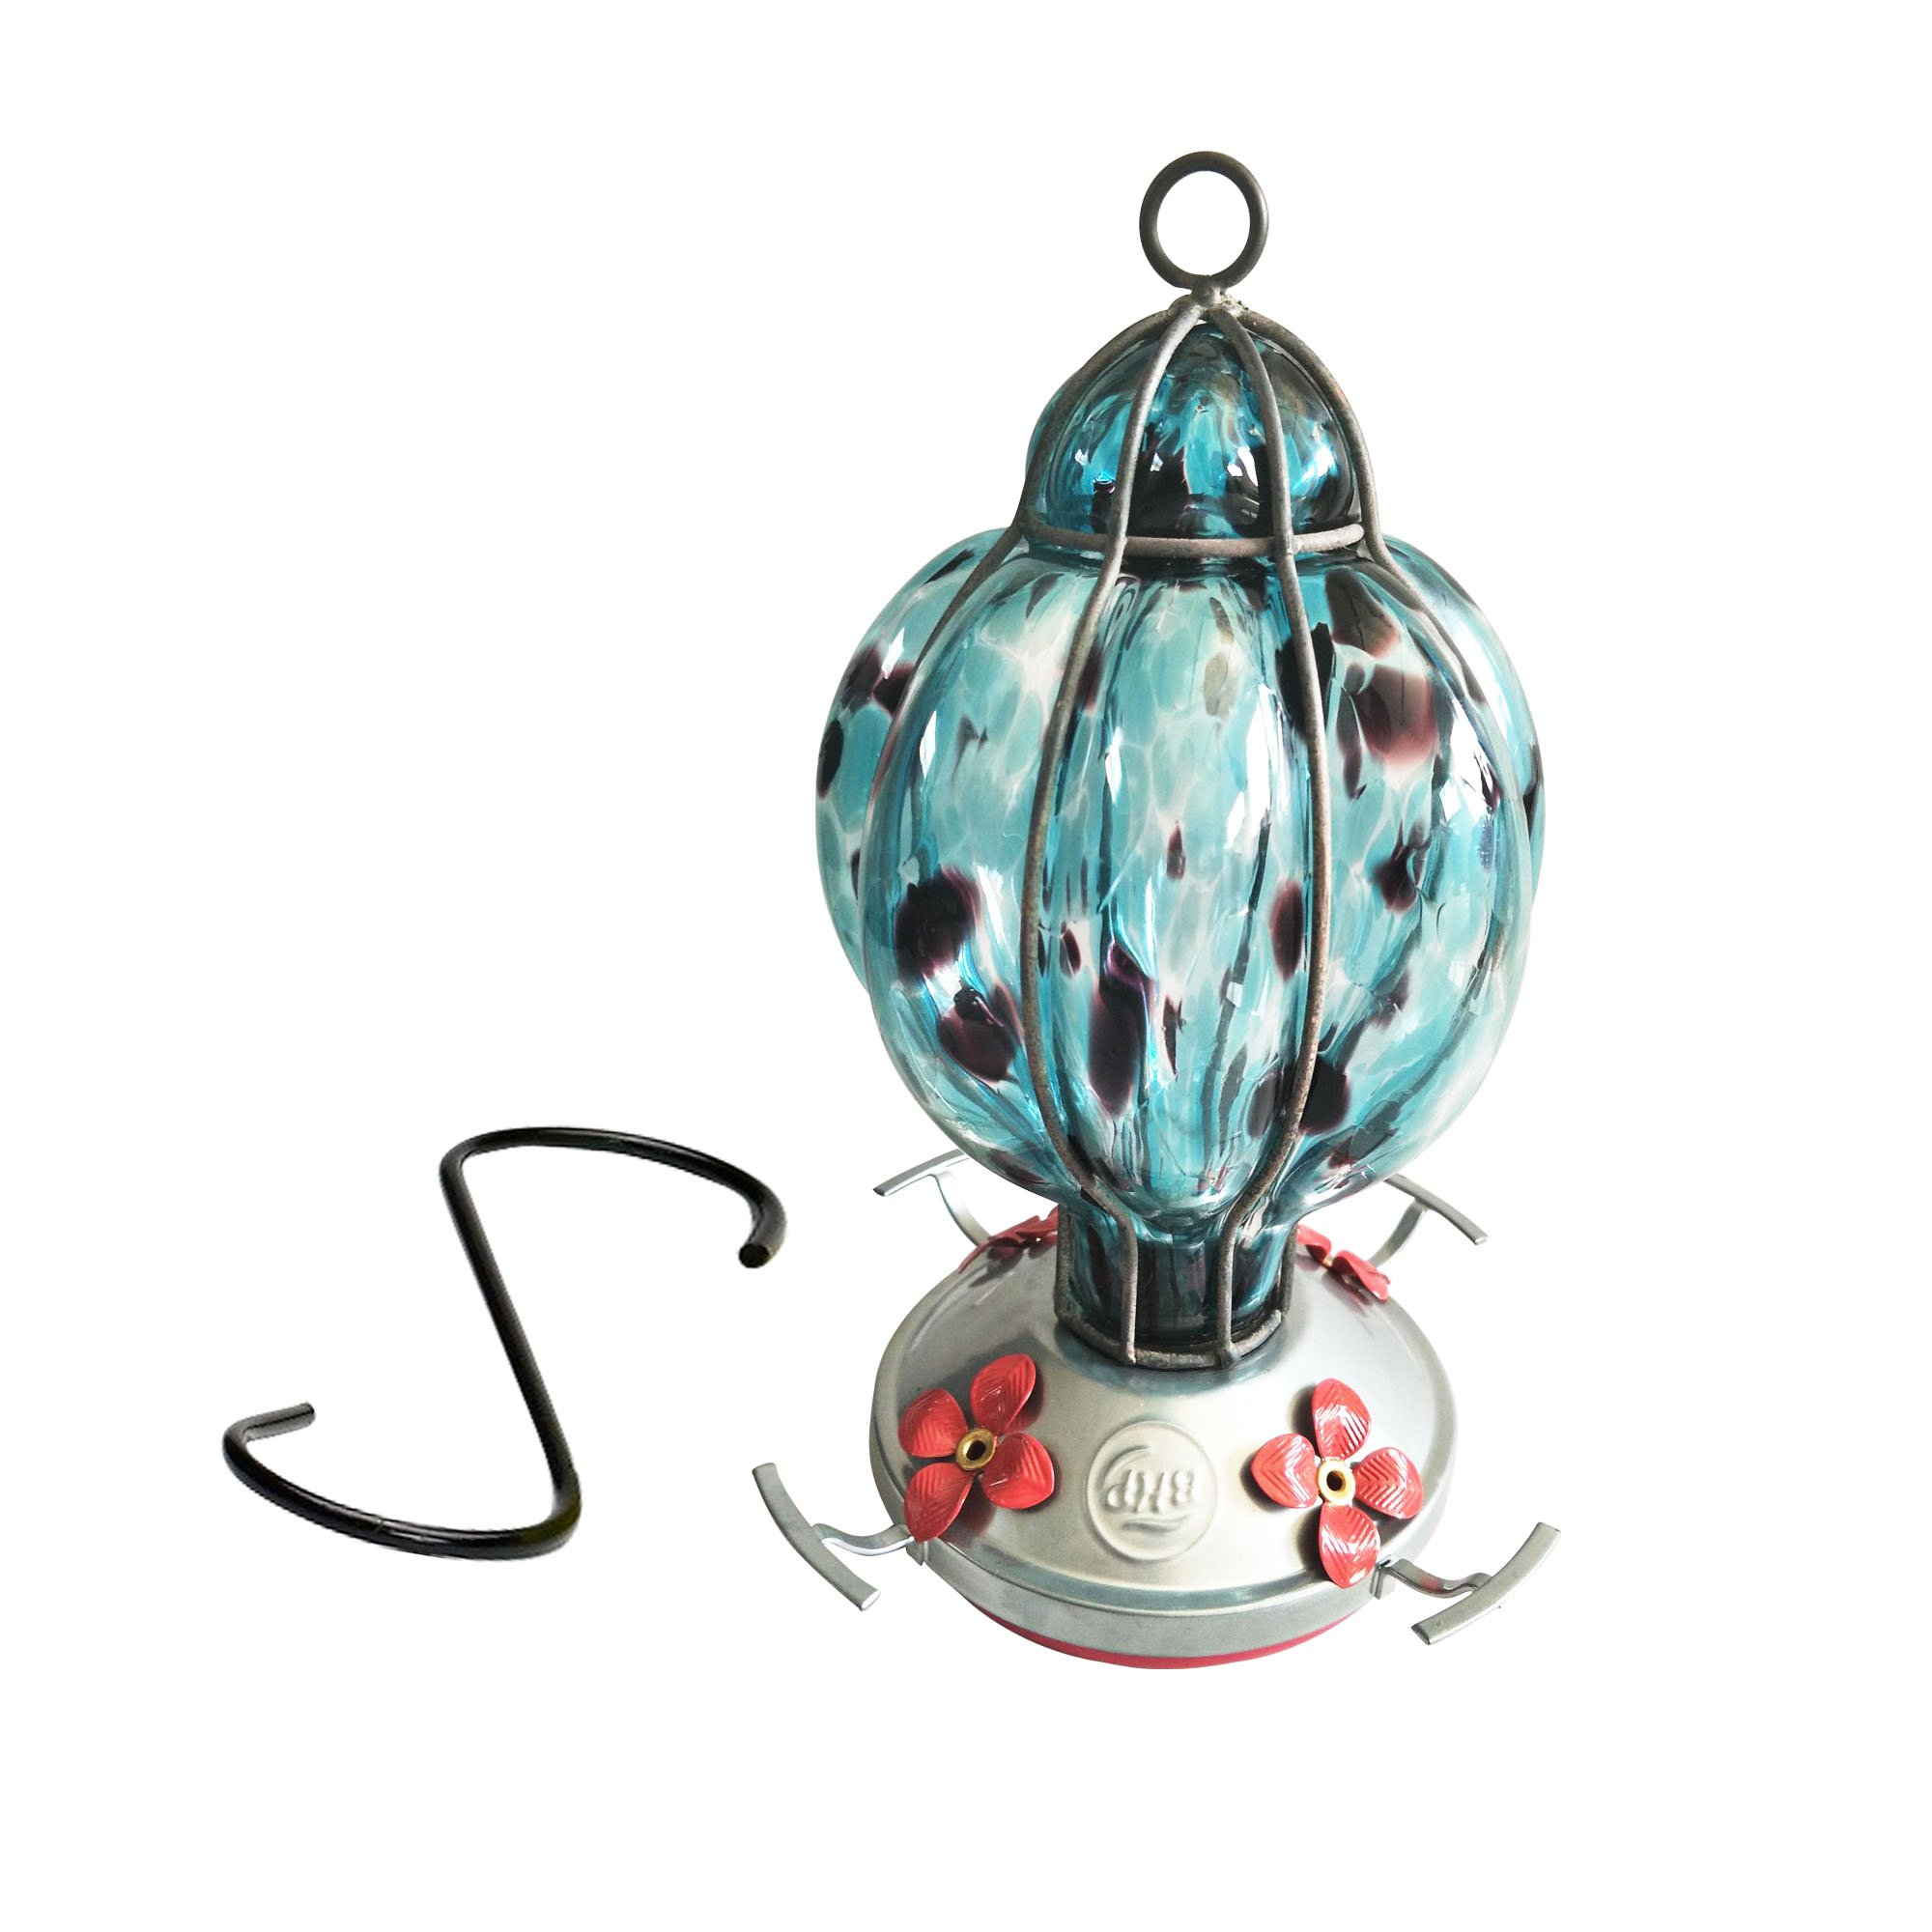 Best Home Products - Hummingbird Feeder with Perch - Blown Glass - Blue Black